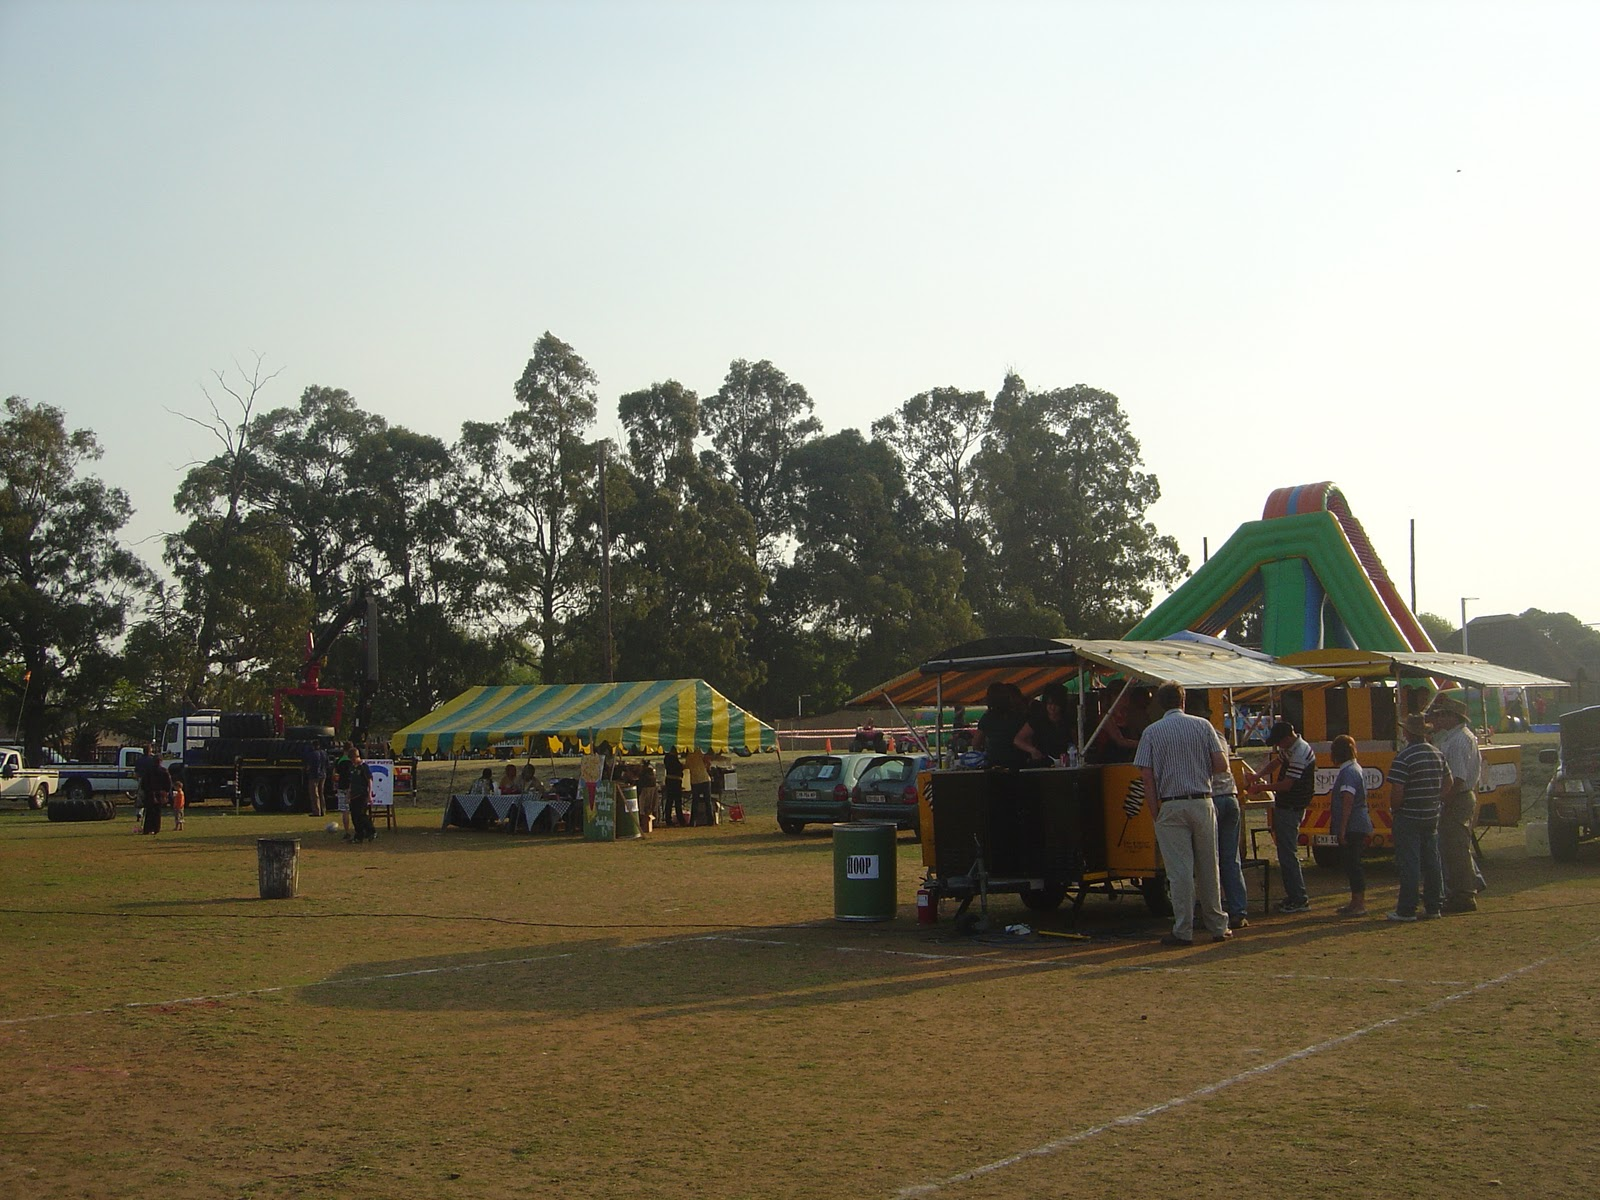 Bethal South Africa  City pictures : Free Reformed Church of Bethal: Country Fair Bethal South Africa